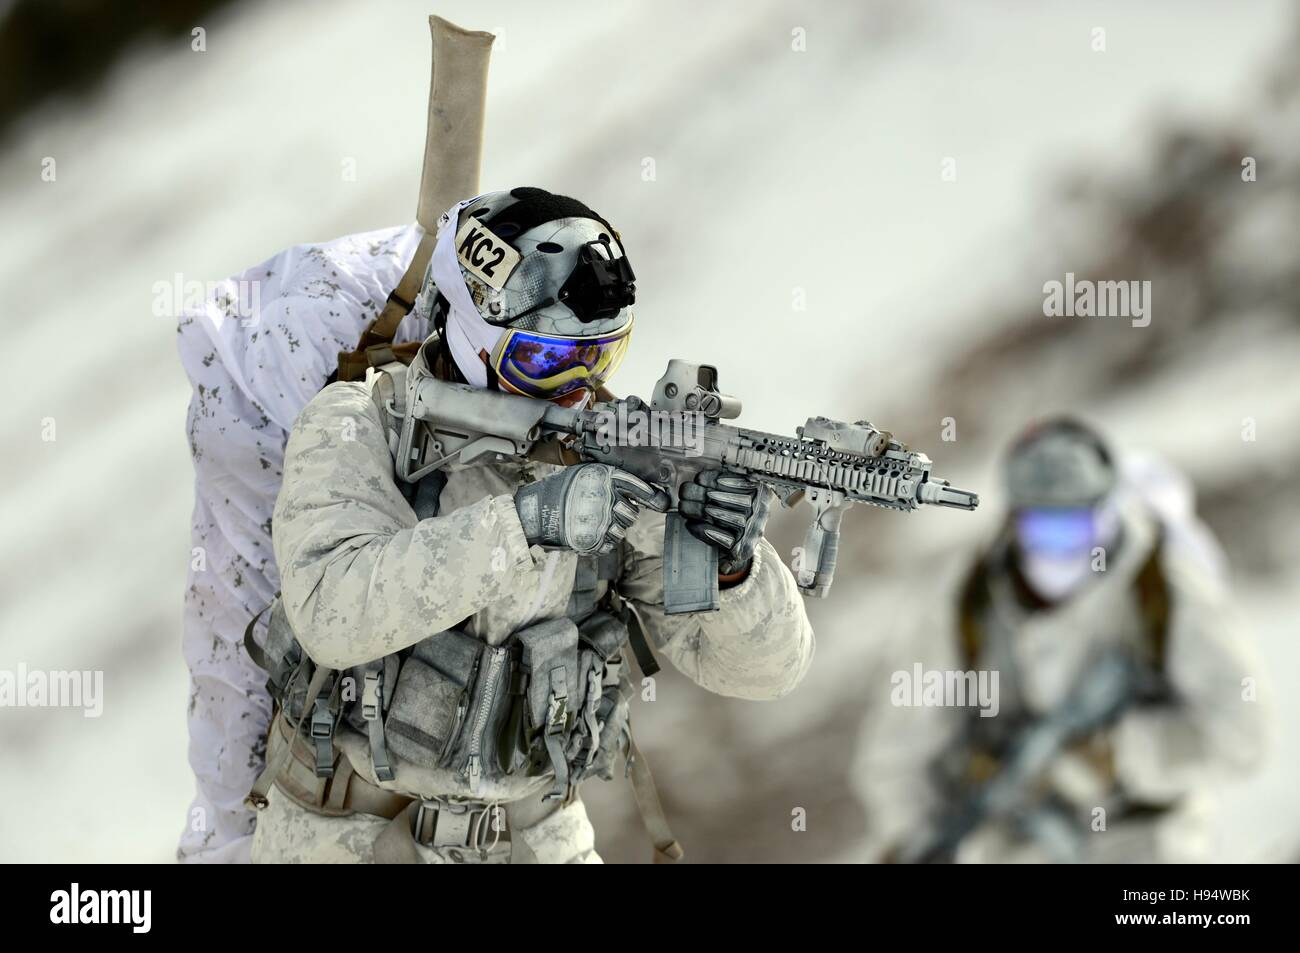 U.S. Navy SEAL soldiers demonstrate winter warfare techniques in snow camouflage December 9, 2014 in Mammoth Lakes, - Stock Image